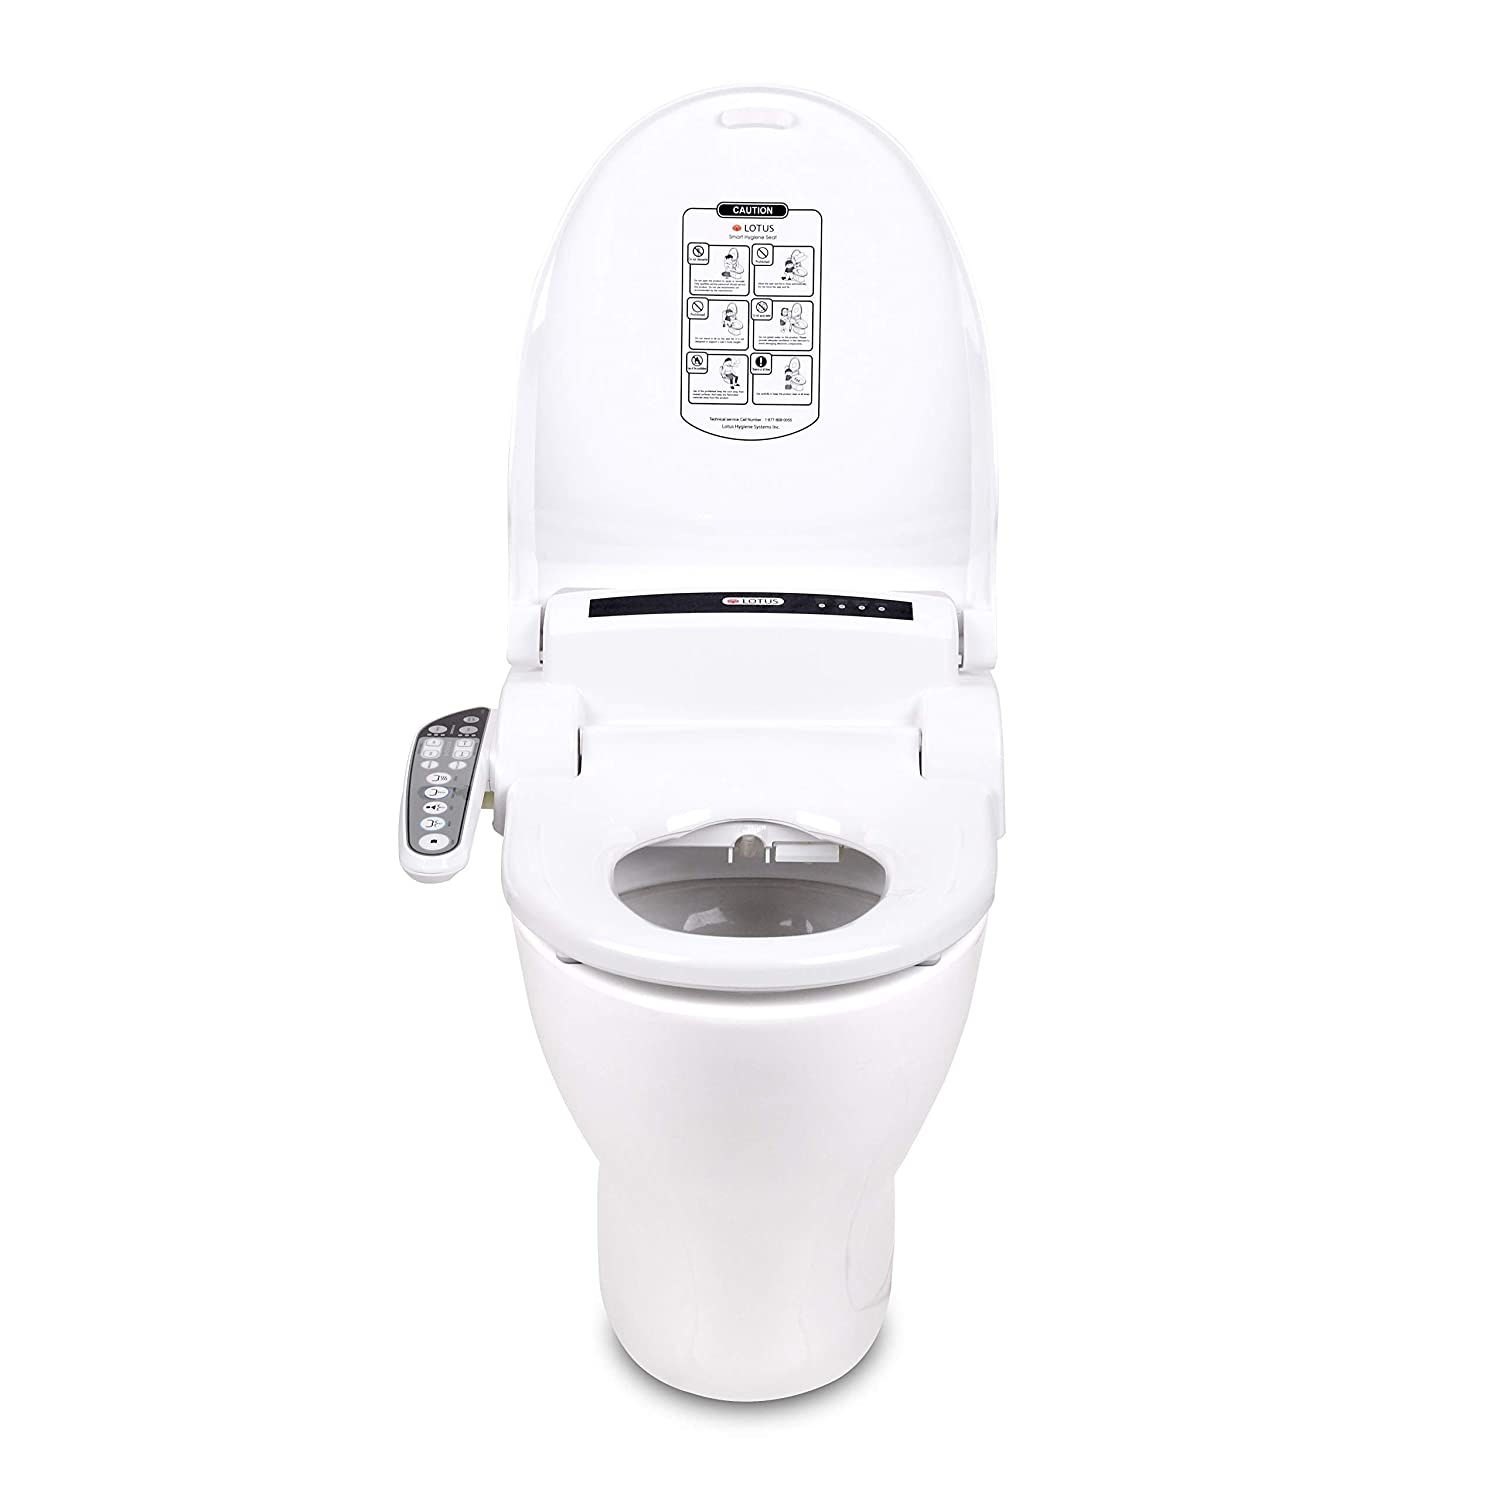 Phenomenal Lotus Ats 909 Advanced Smart Toilet Seat Bidet Purestream Function Constipation Relief Heated Seat And Temperature Controlled Wash Warm Air Dryer Creativecarmelina Interior Chair Design Creativecarmelinacom